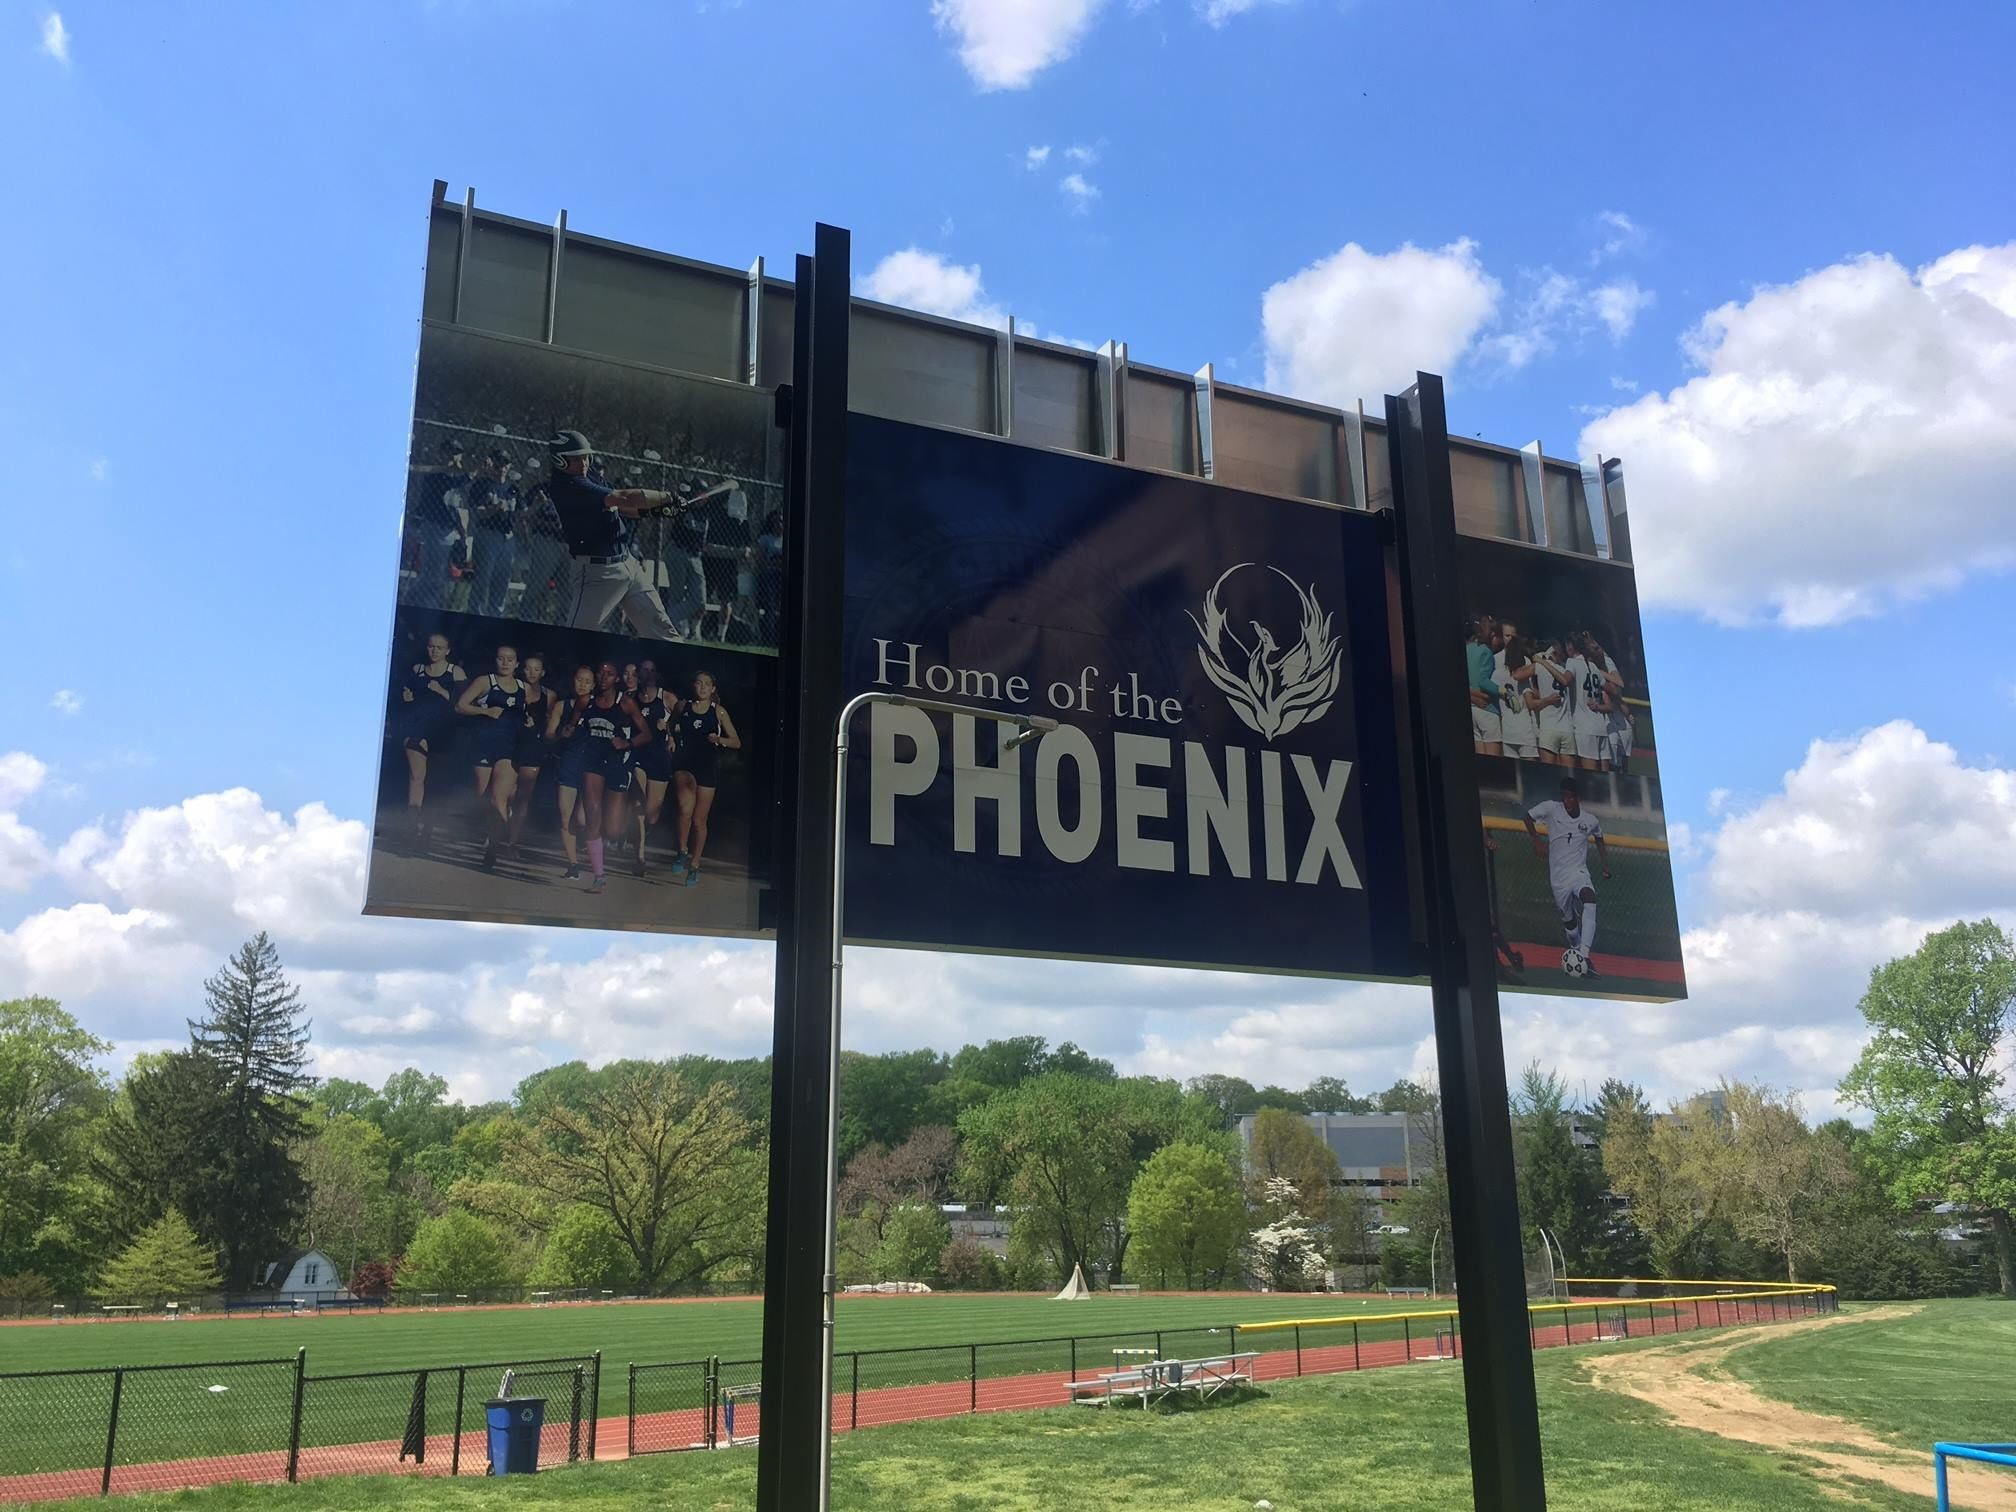 Sporting Events & Athletic Events Signs | School & University Event Signs | Sports Venue & Stadium Signage